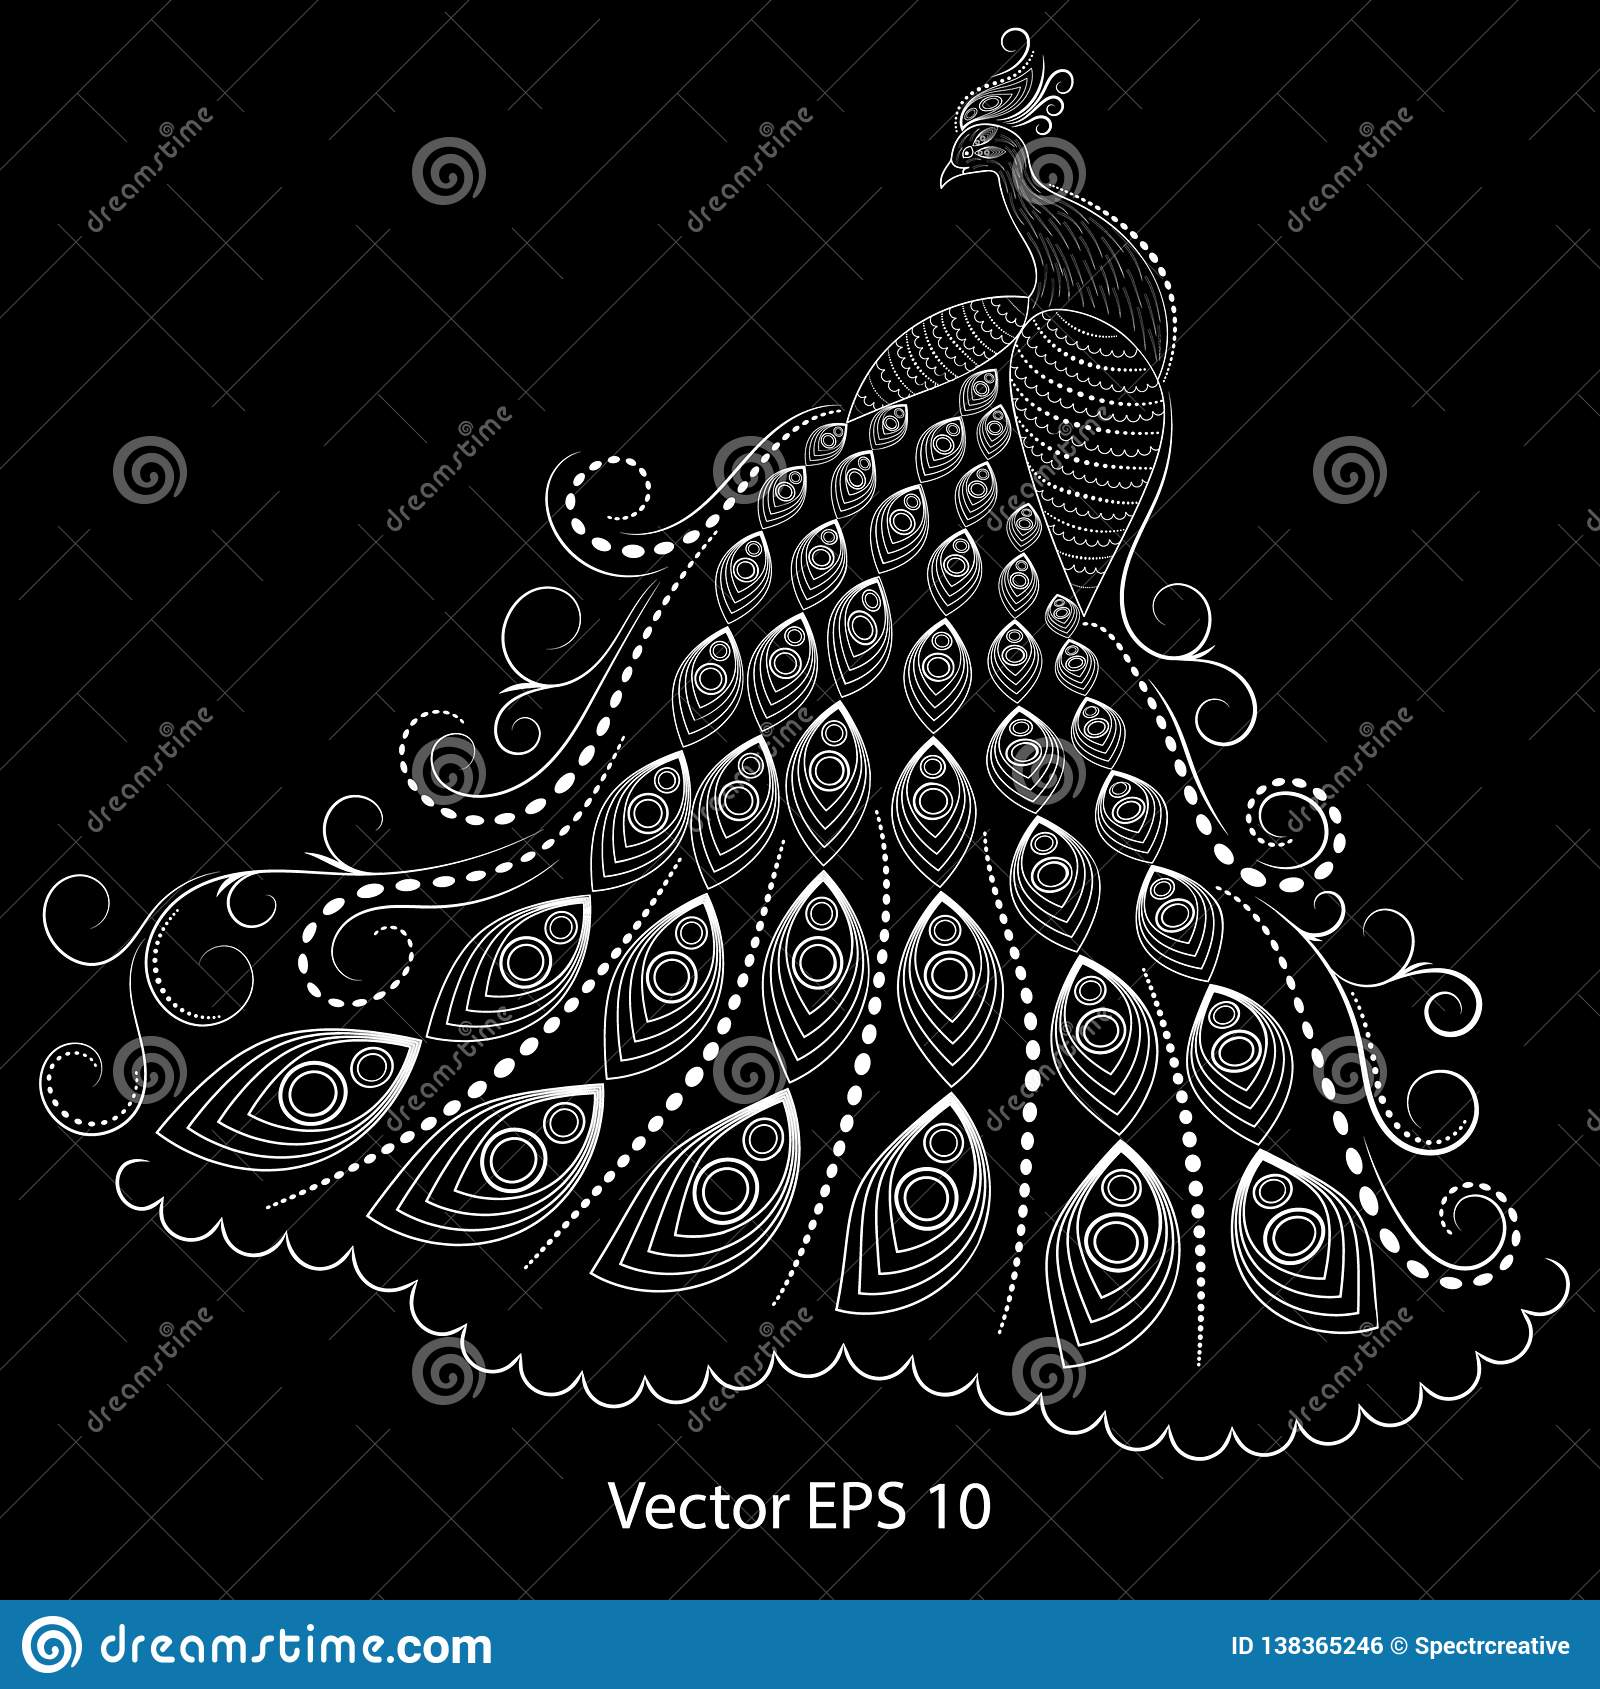 Abstract Illustration Of A White Peacock On A Black